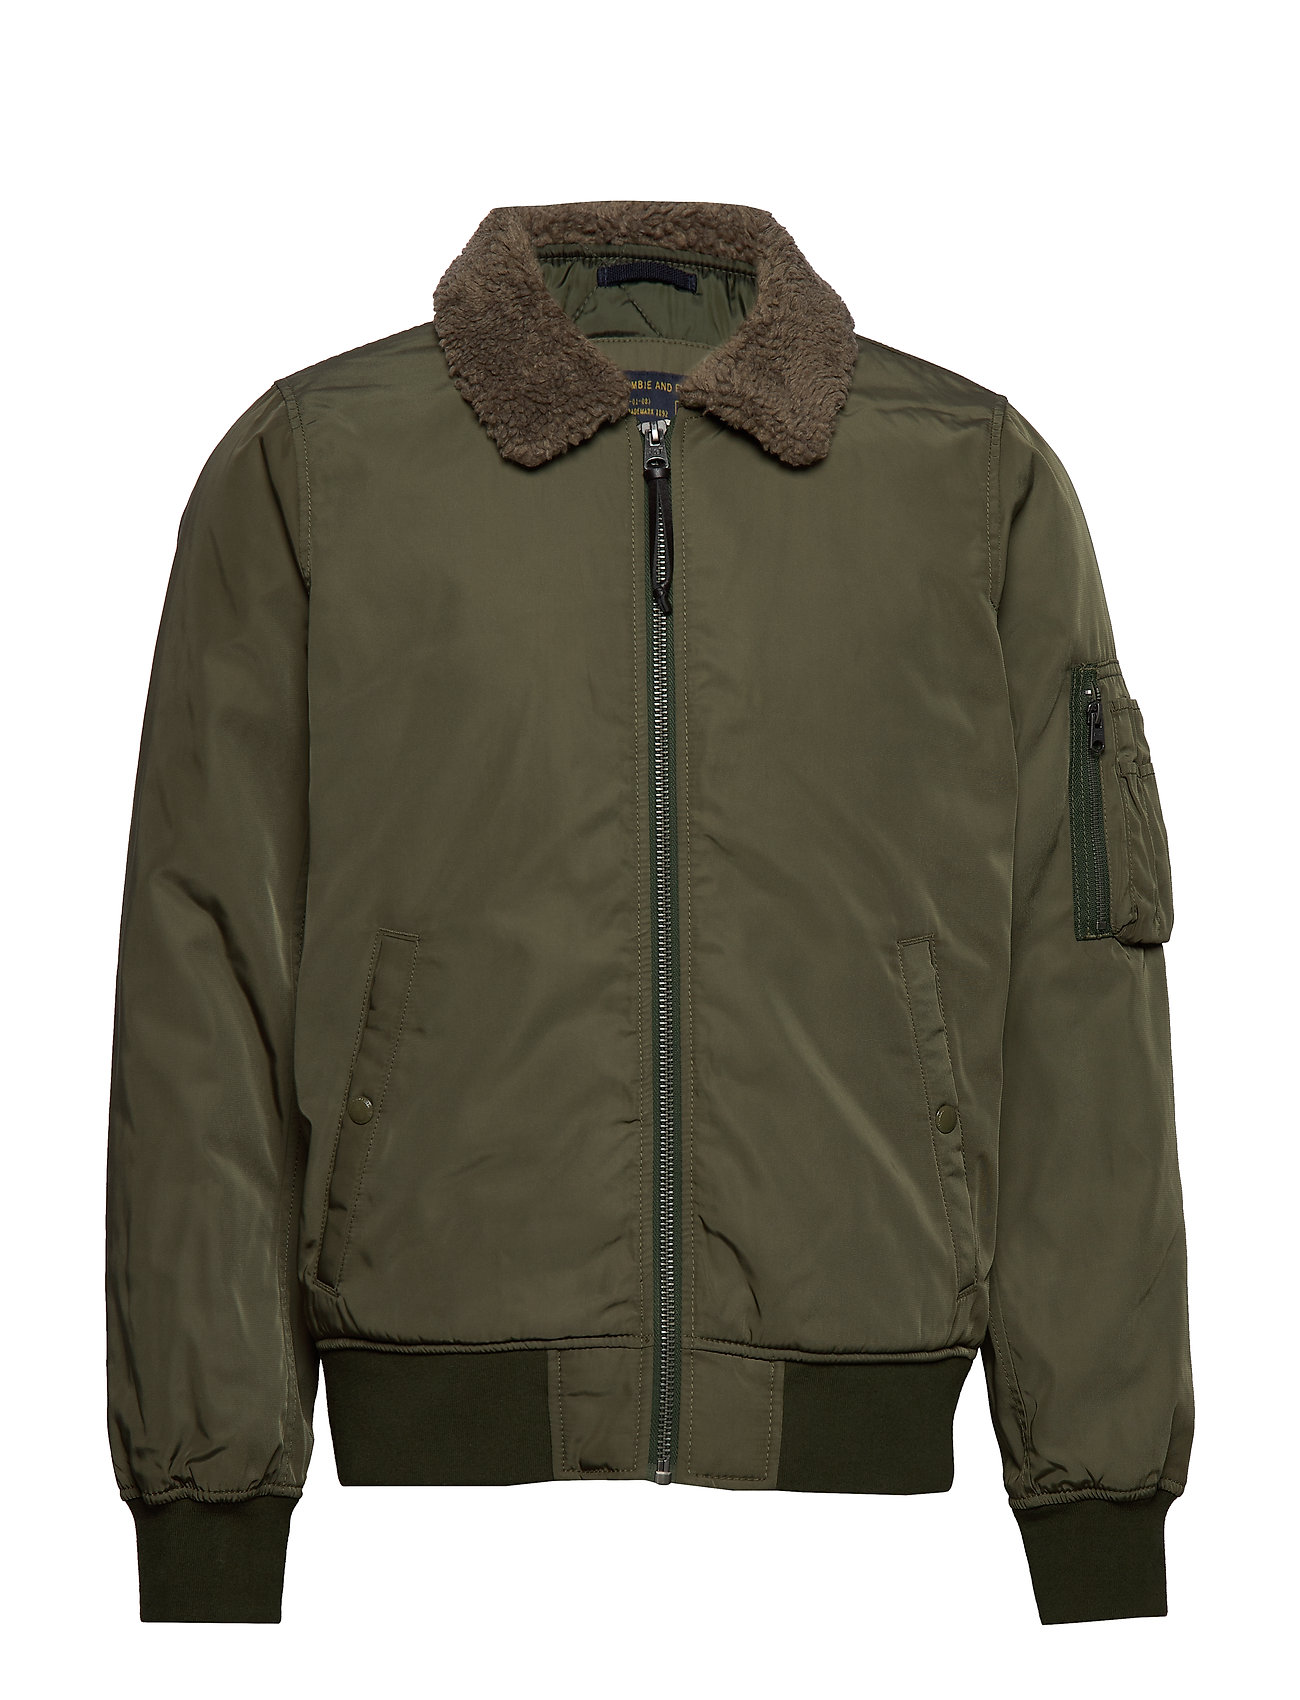 Abercrombie & Fitch Bomber - OLIVE DD